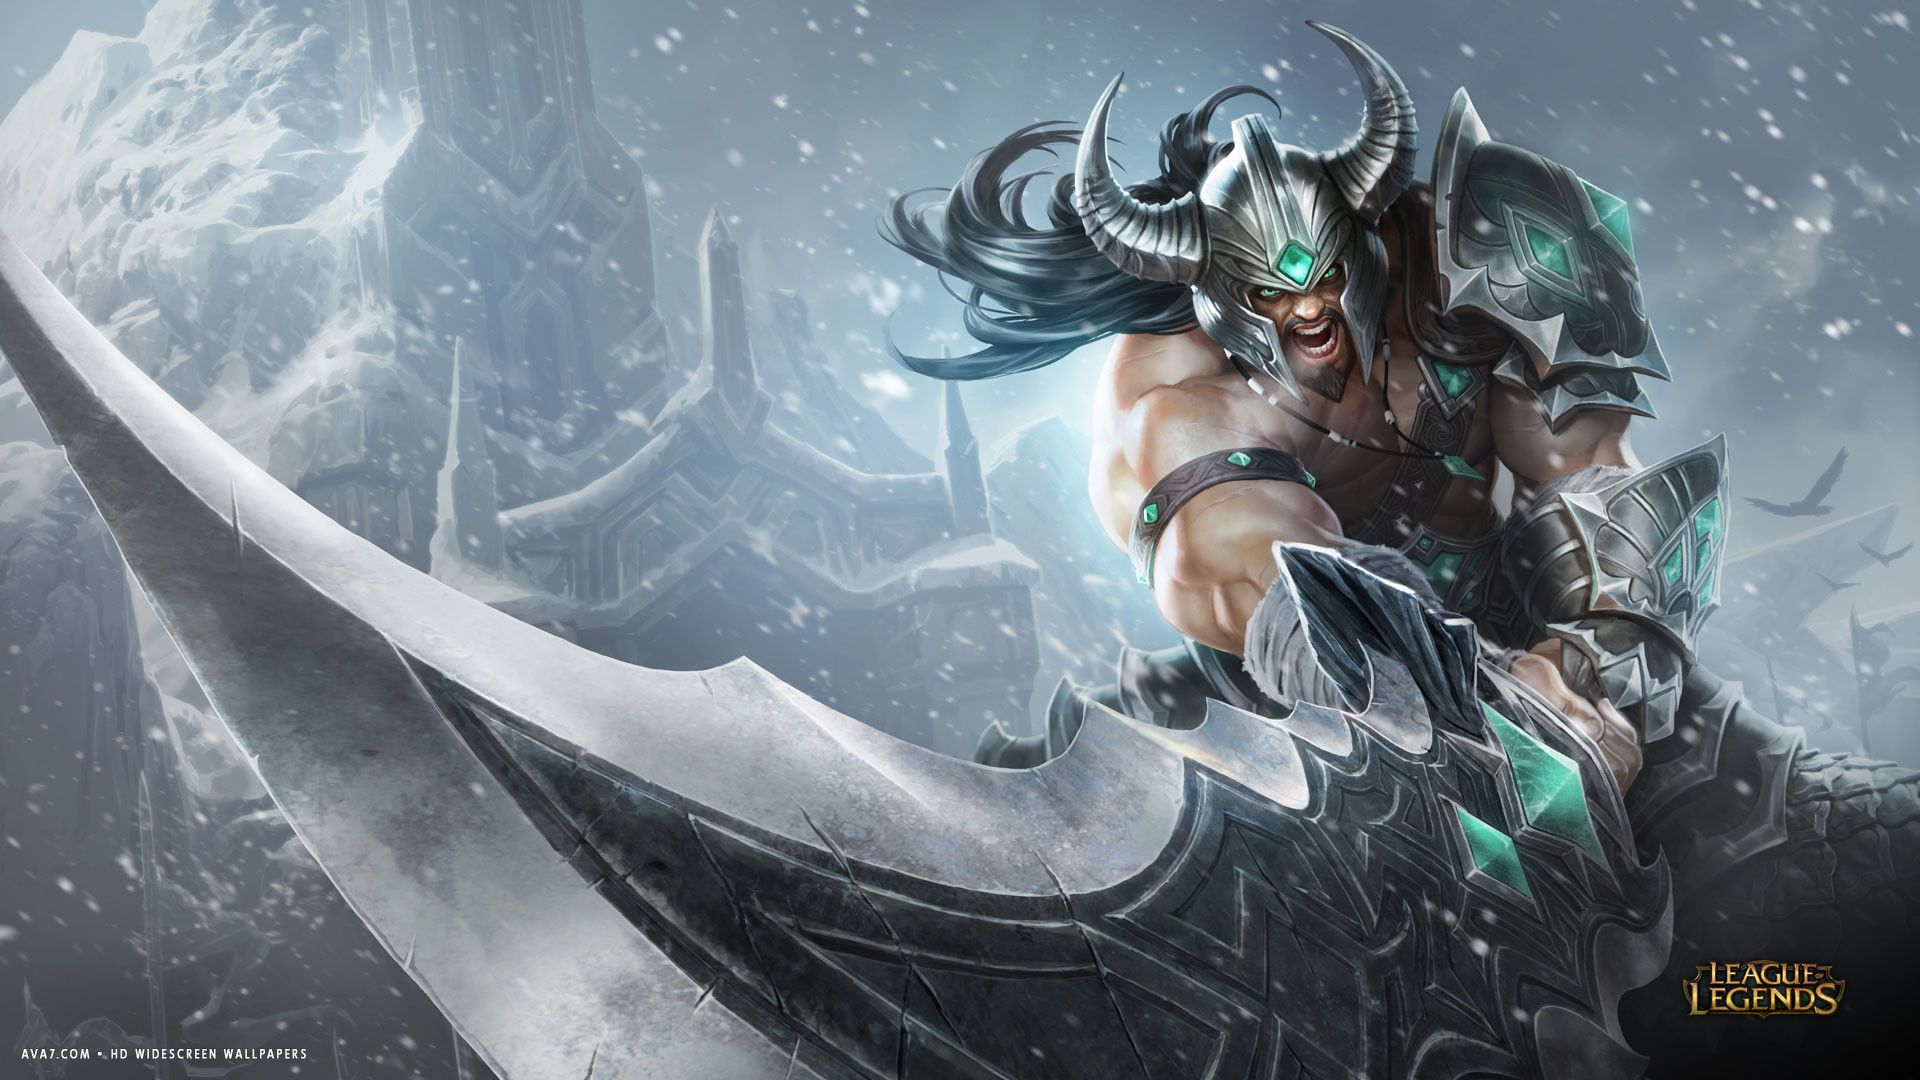 League of legends game lol tryndamere sword hd widescreen wallpaper league of legends game lol tryndamere sword hd widescreen wallpaper and games desktop backgrounds for your computer or tablet voltagebd Choice Image